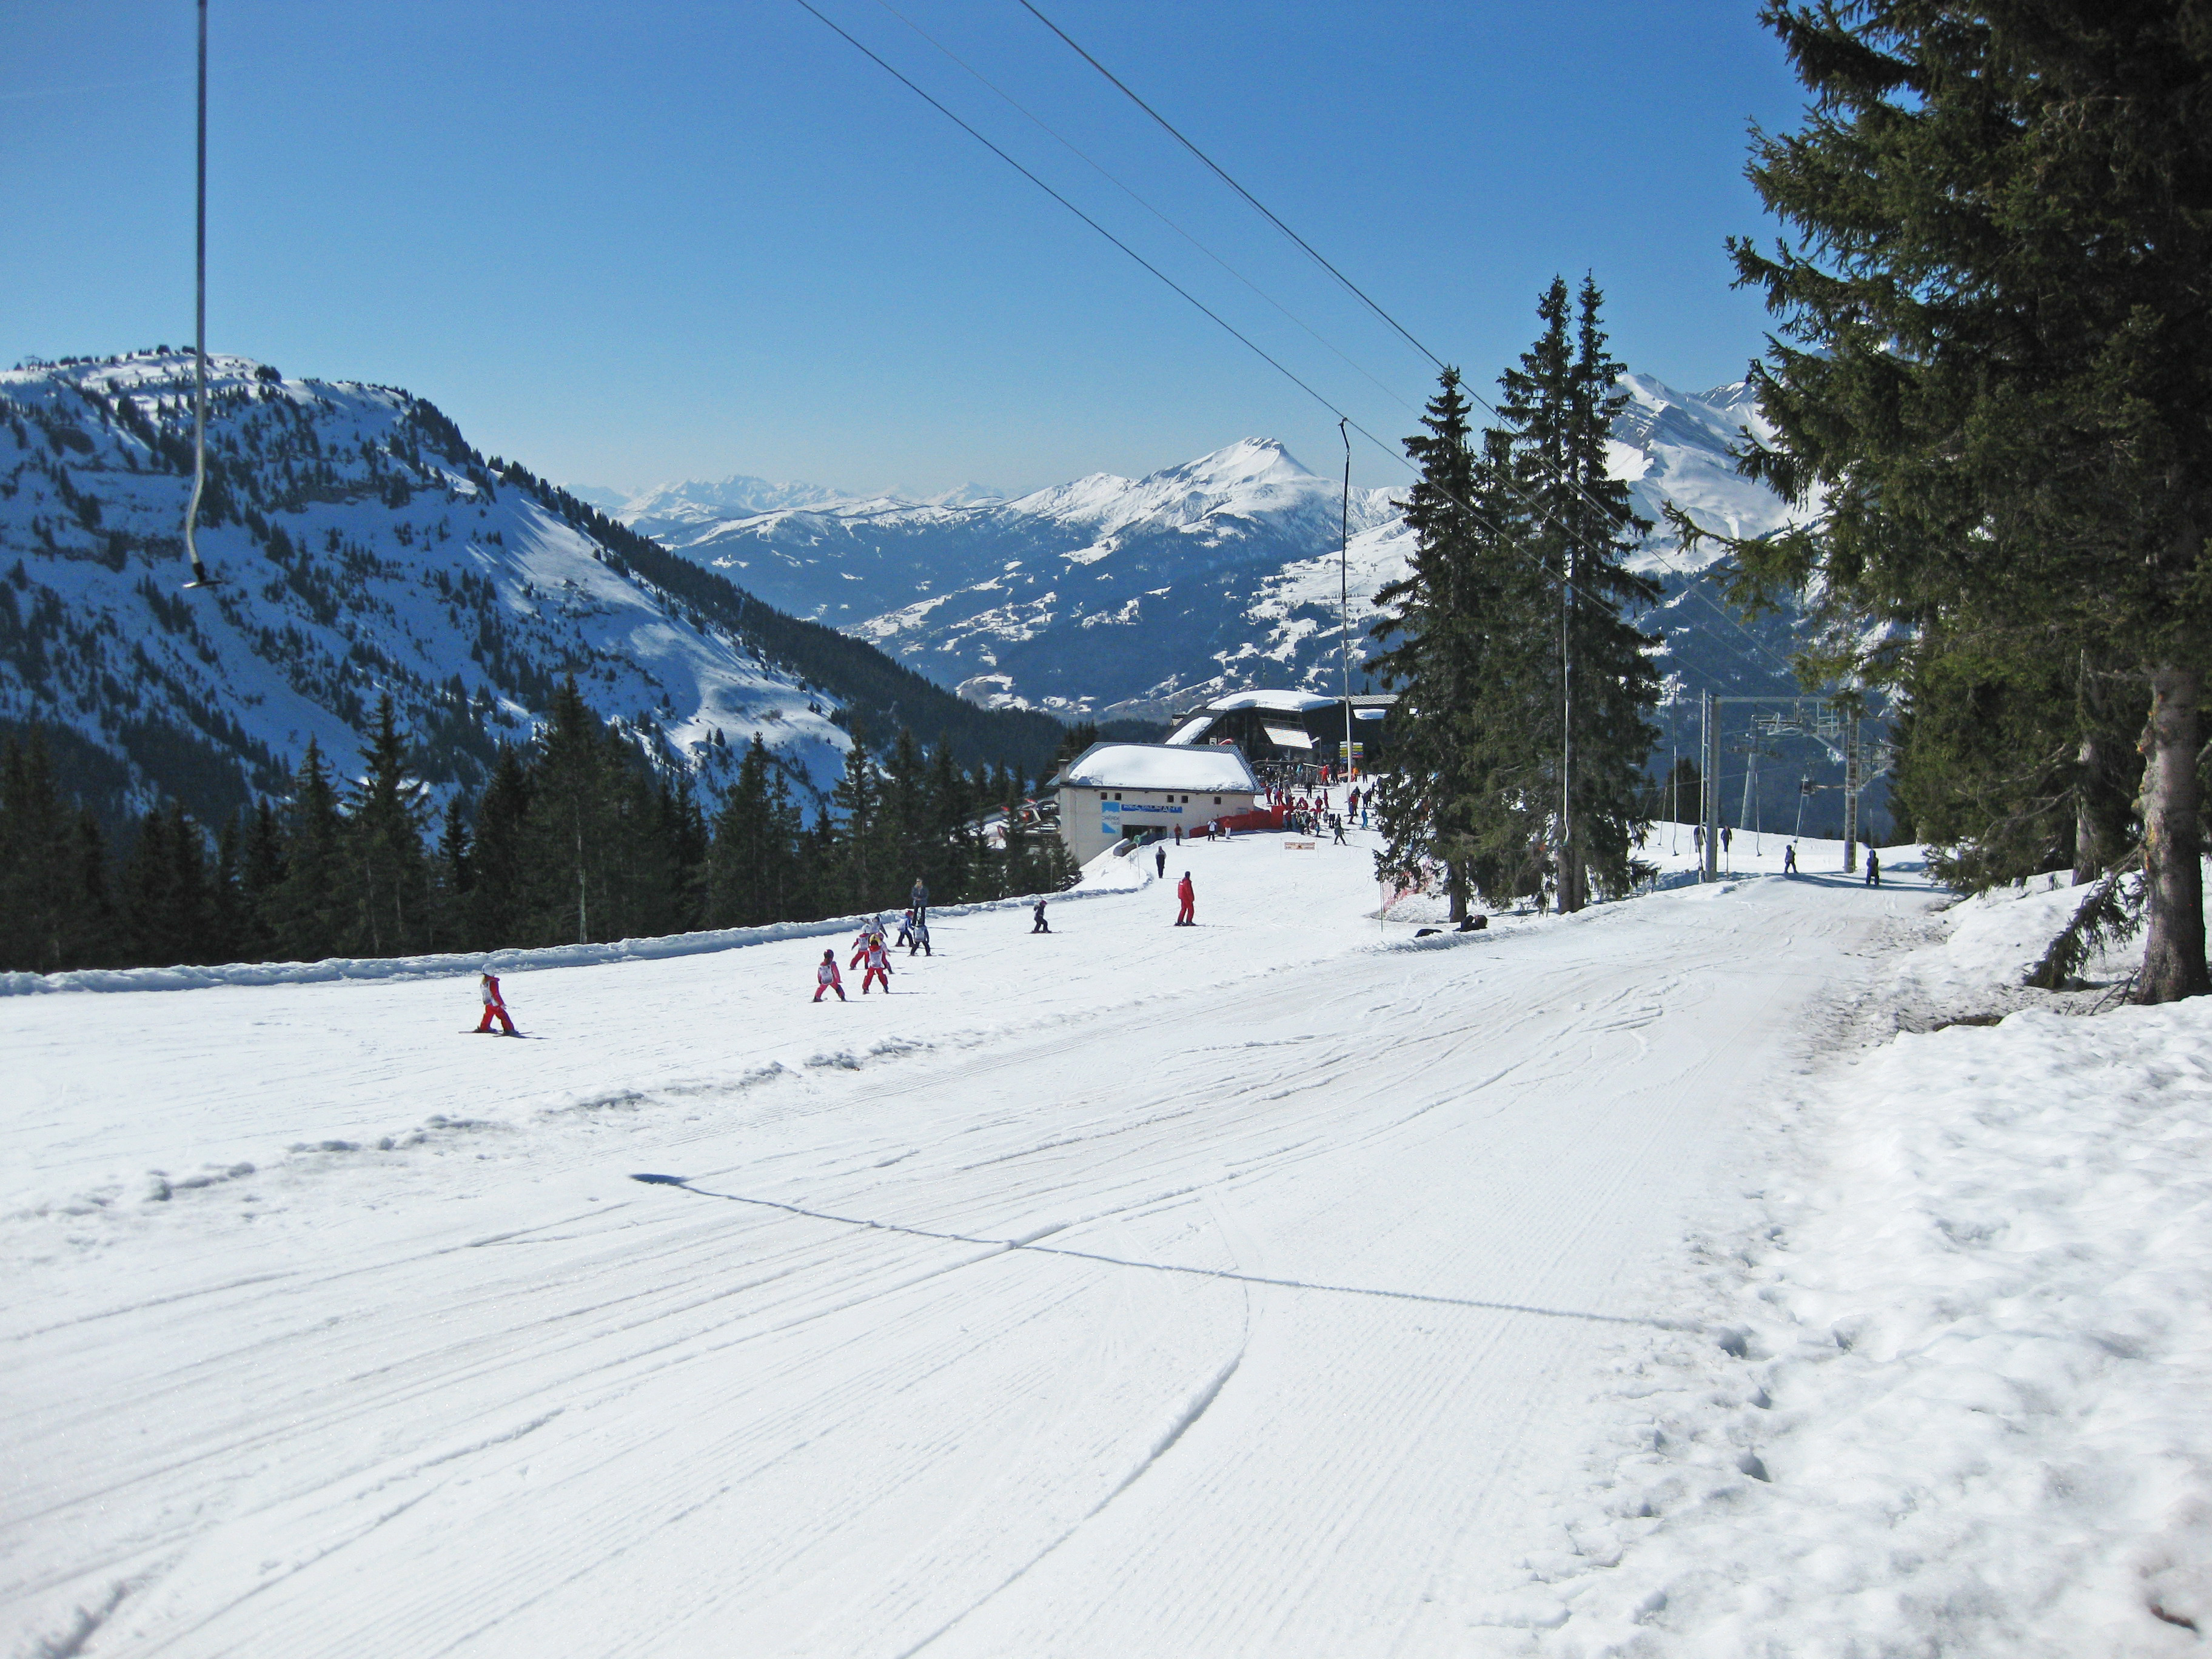 Les Carroz Beginner Ski Slopes